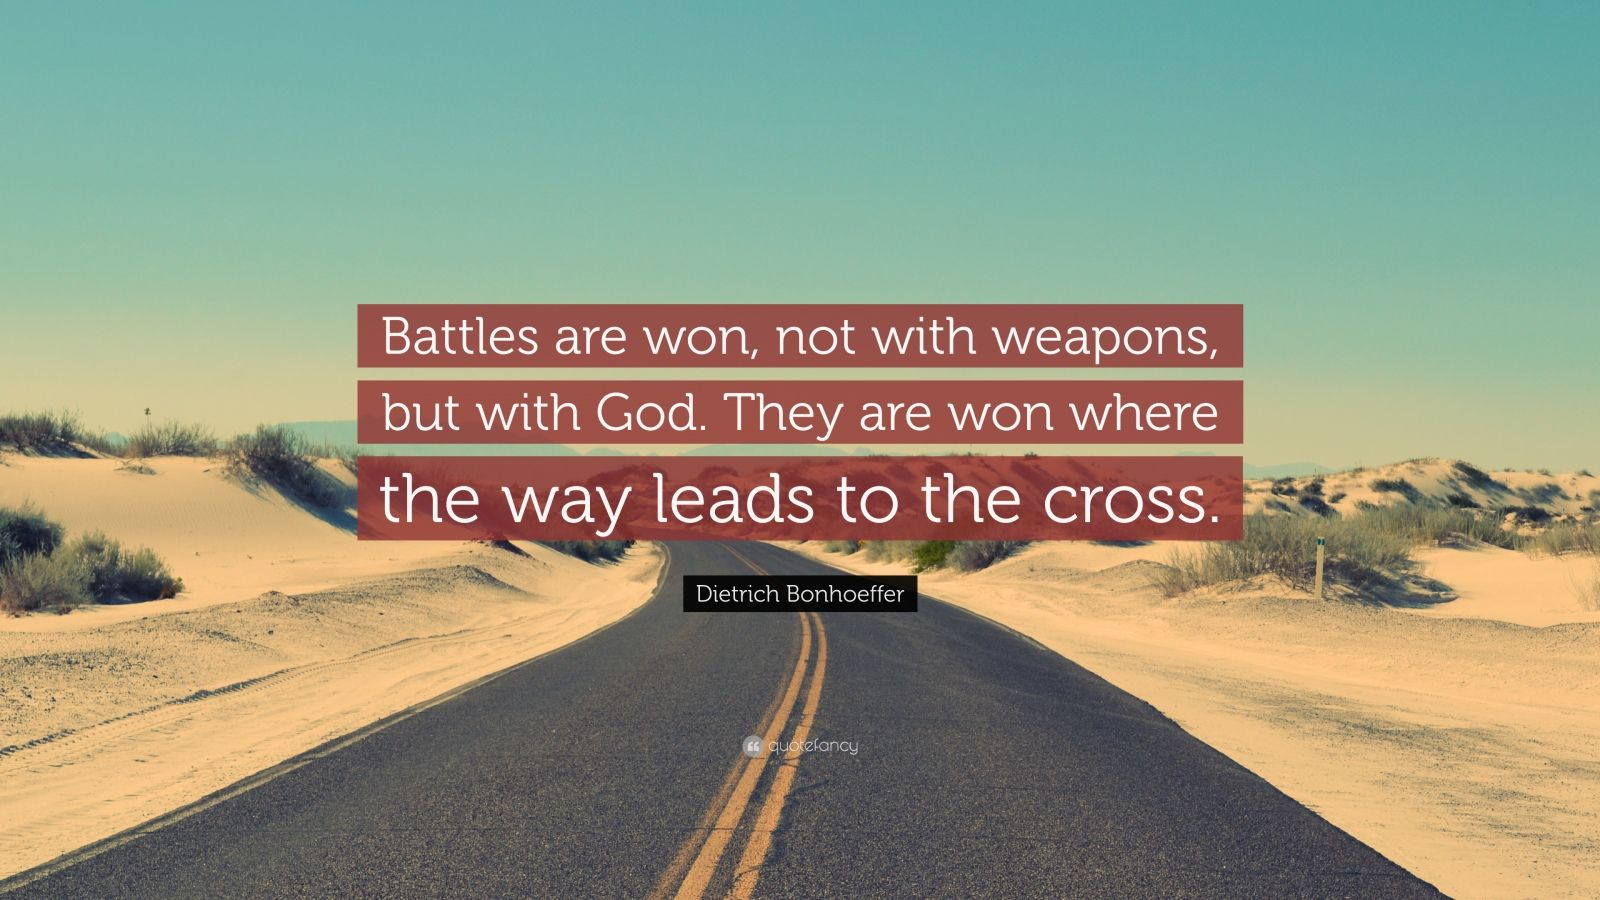 """Dietrich Bonhoeffer Quote: """"Battles are won, not with weapons, but with God. They are won where the way leads to the cross."""""""